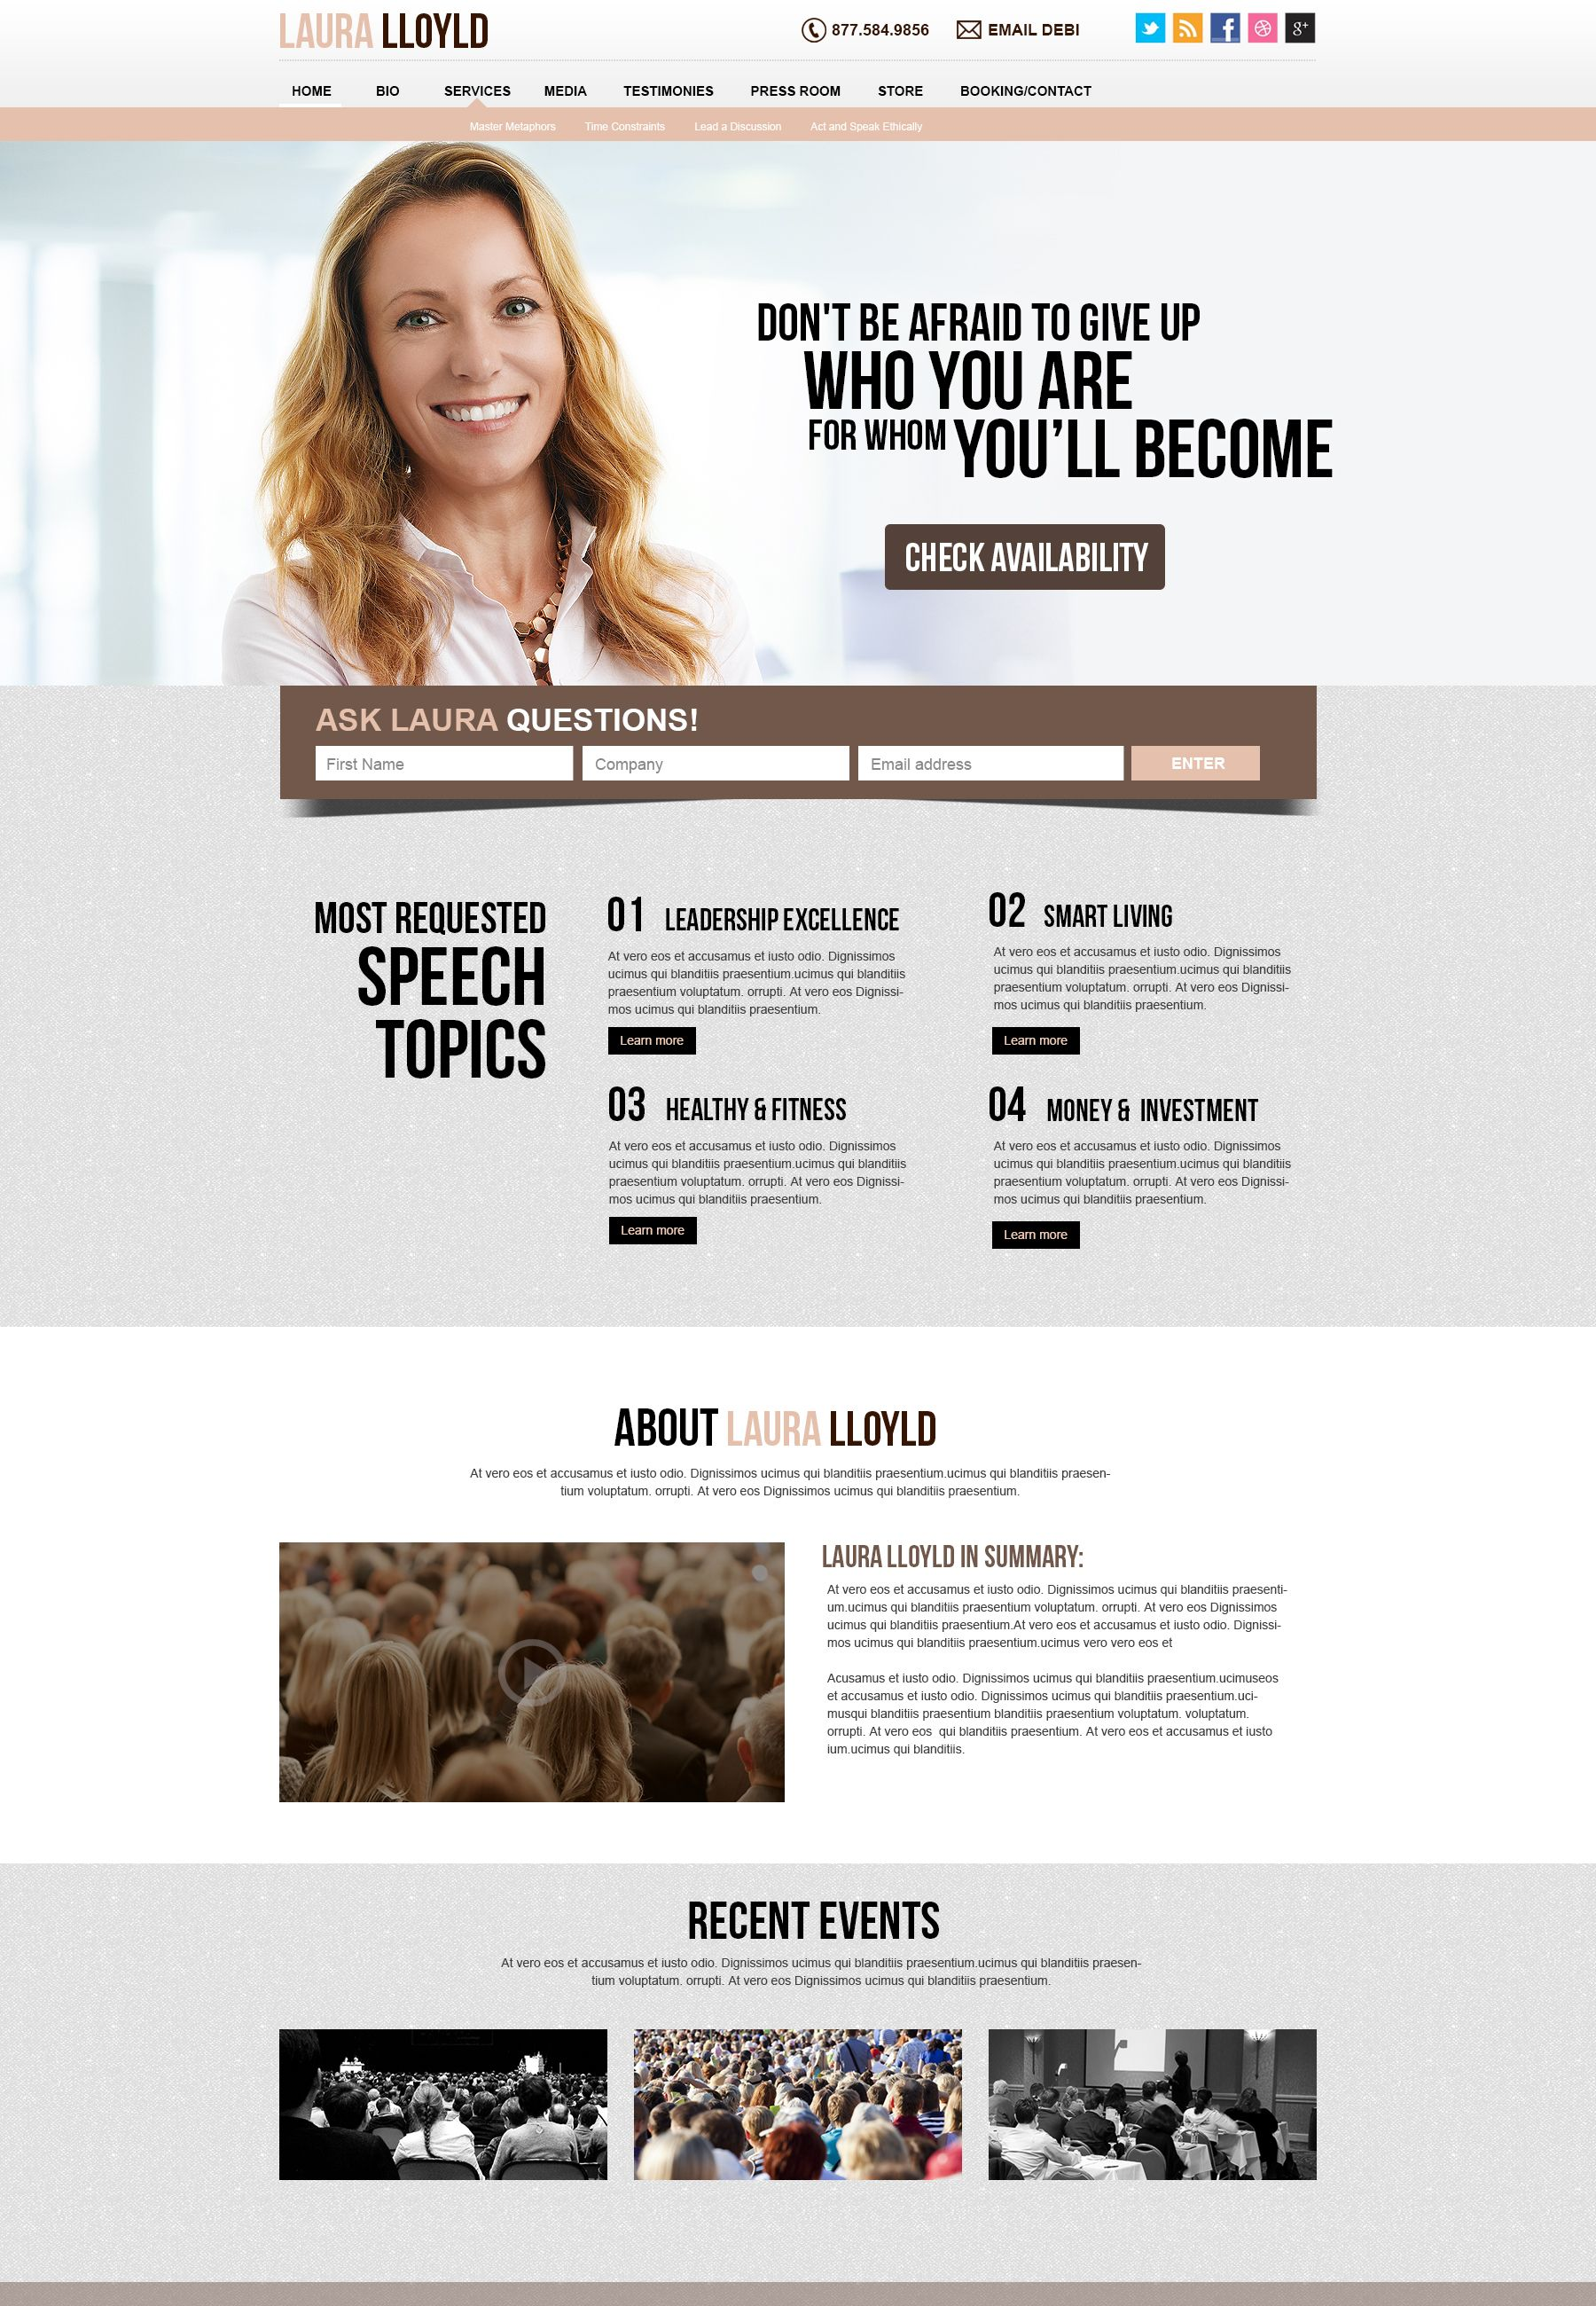 We Offer Services From Creative Webdesign Development And Internet Marketing Company From Tampa Websites Coach Website Motivational Speaker Public Speaker